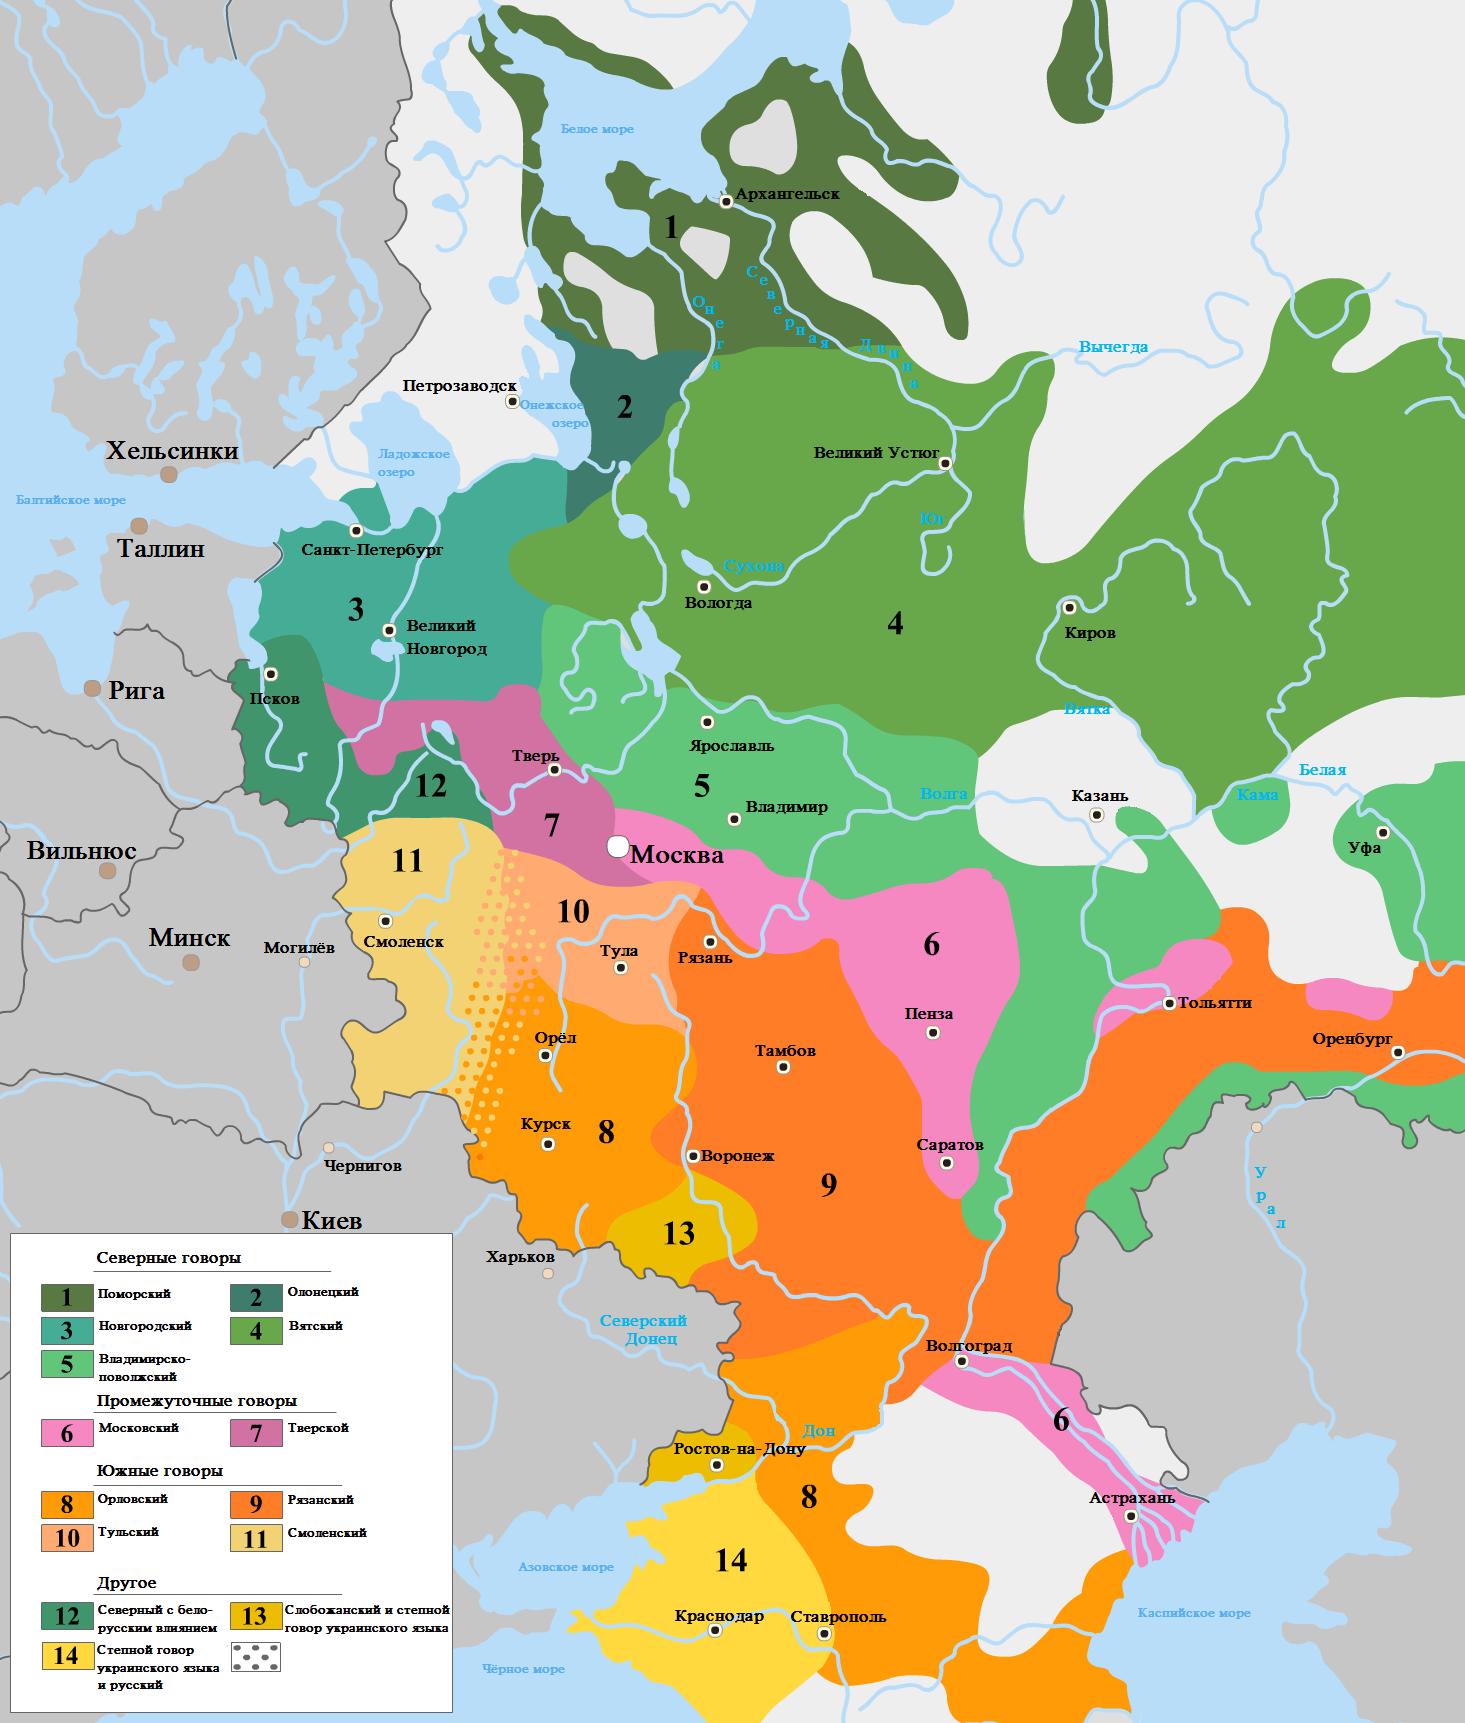 Russian Dialects In 1915 Northern Dialects 1. Arkhangelsk